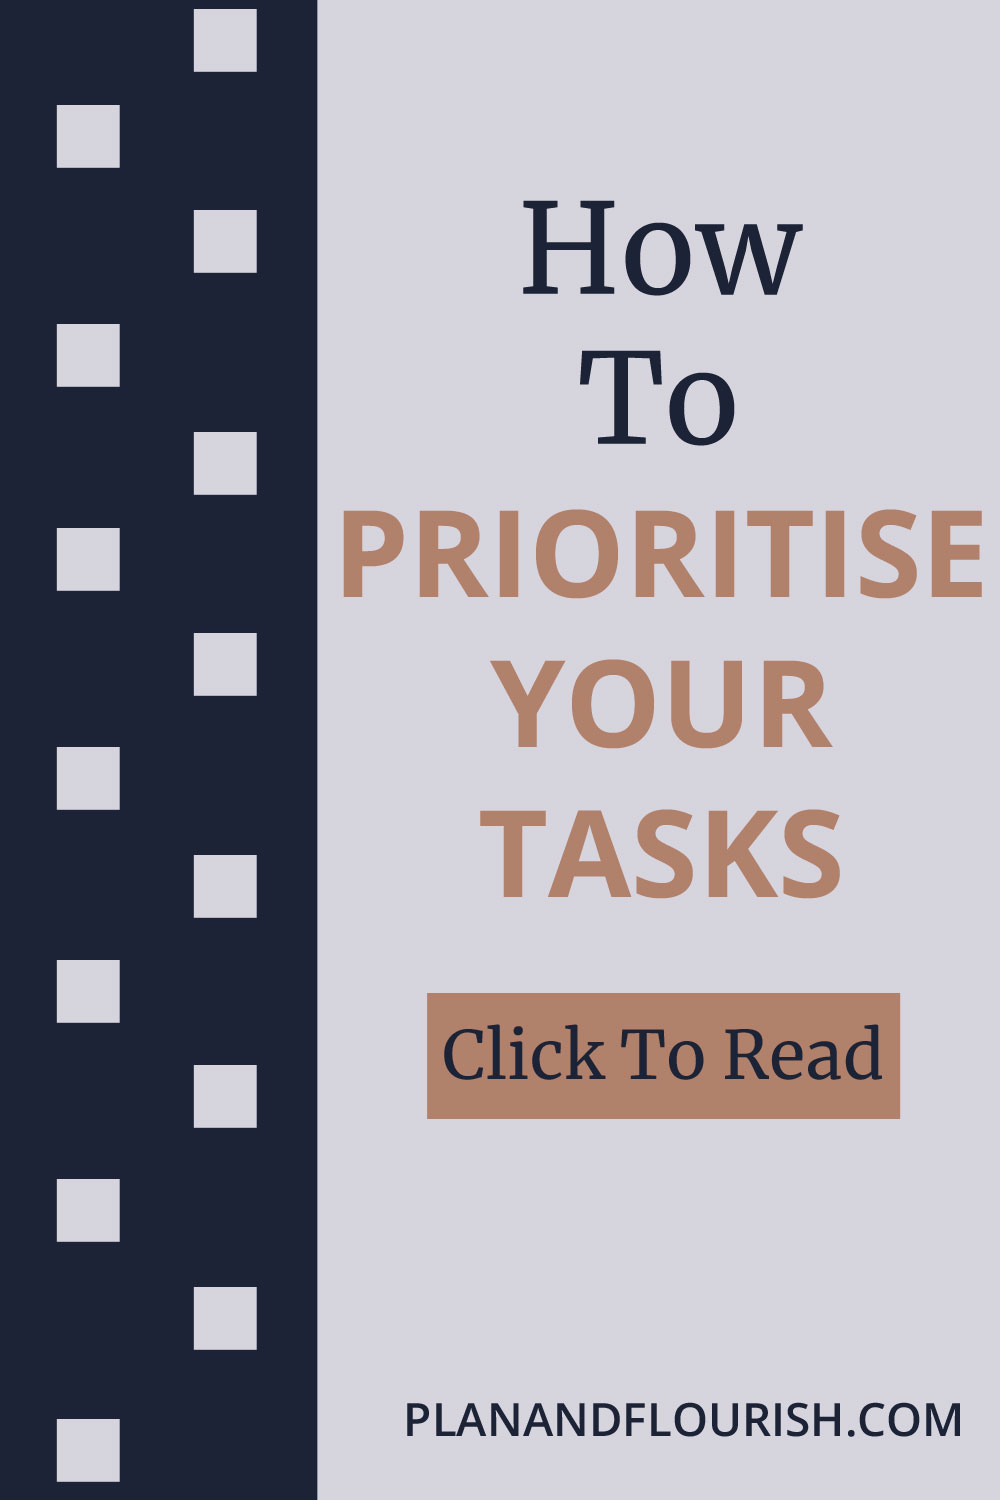 How To Prioritise Your Tasks | Click To Read